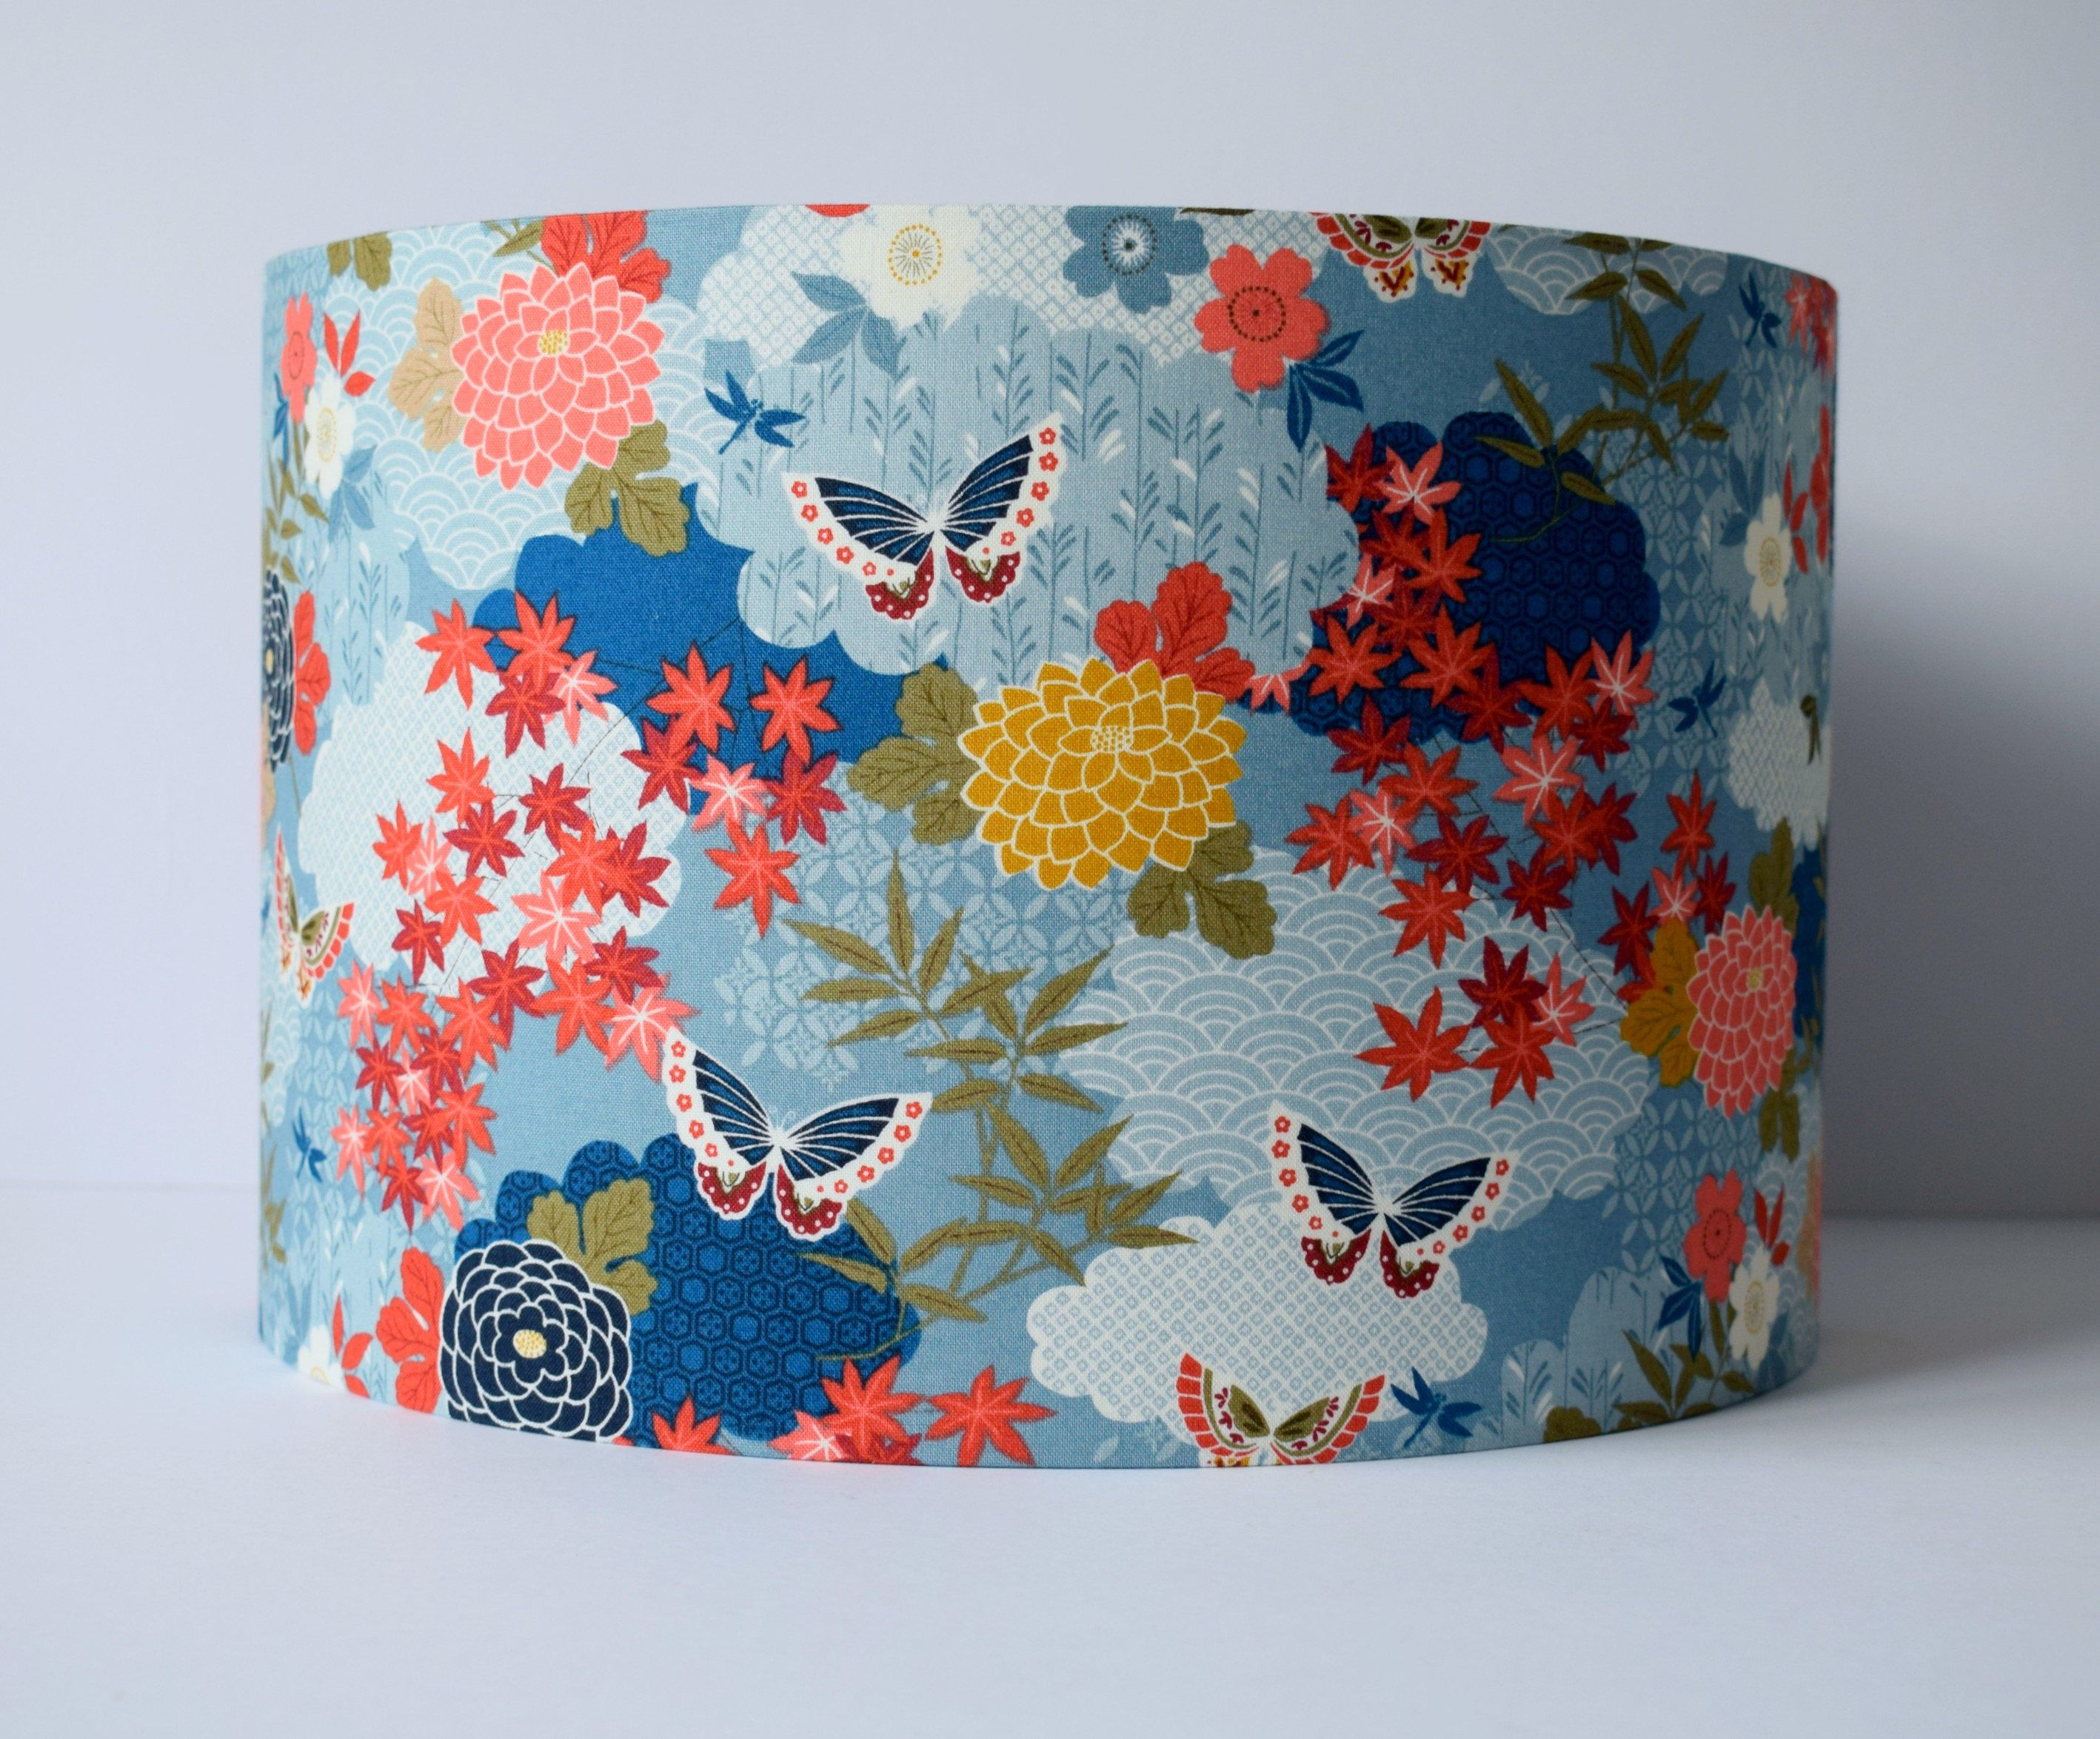 Watercolour Butterfly Lampshade free gift lightshade,Retro,Country Shabby Chic